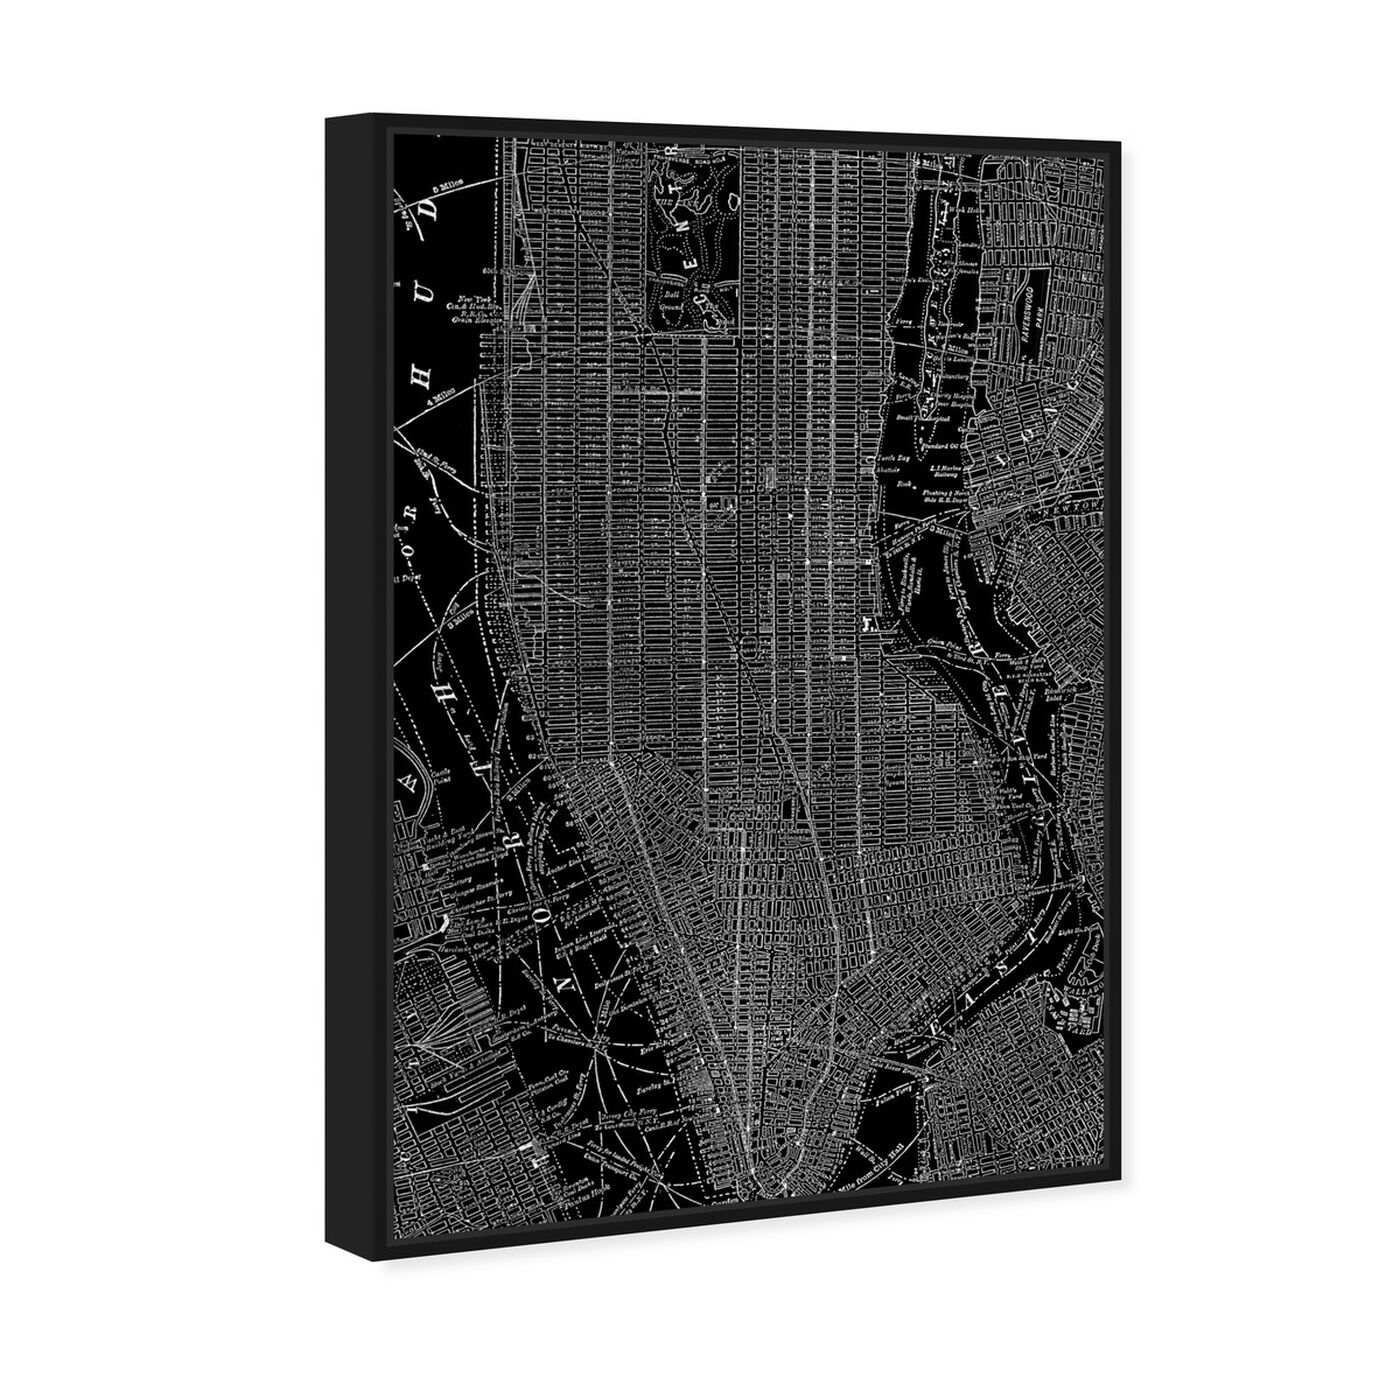 Angled view of Phylum Design The City That Never Sleeps featuring maps and flags and us cities maps art.